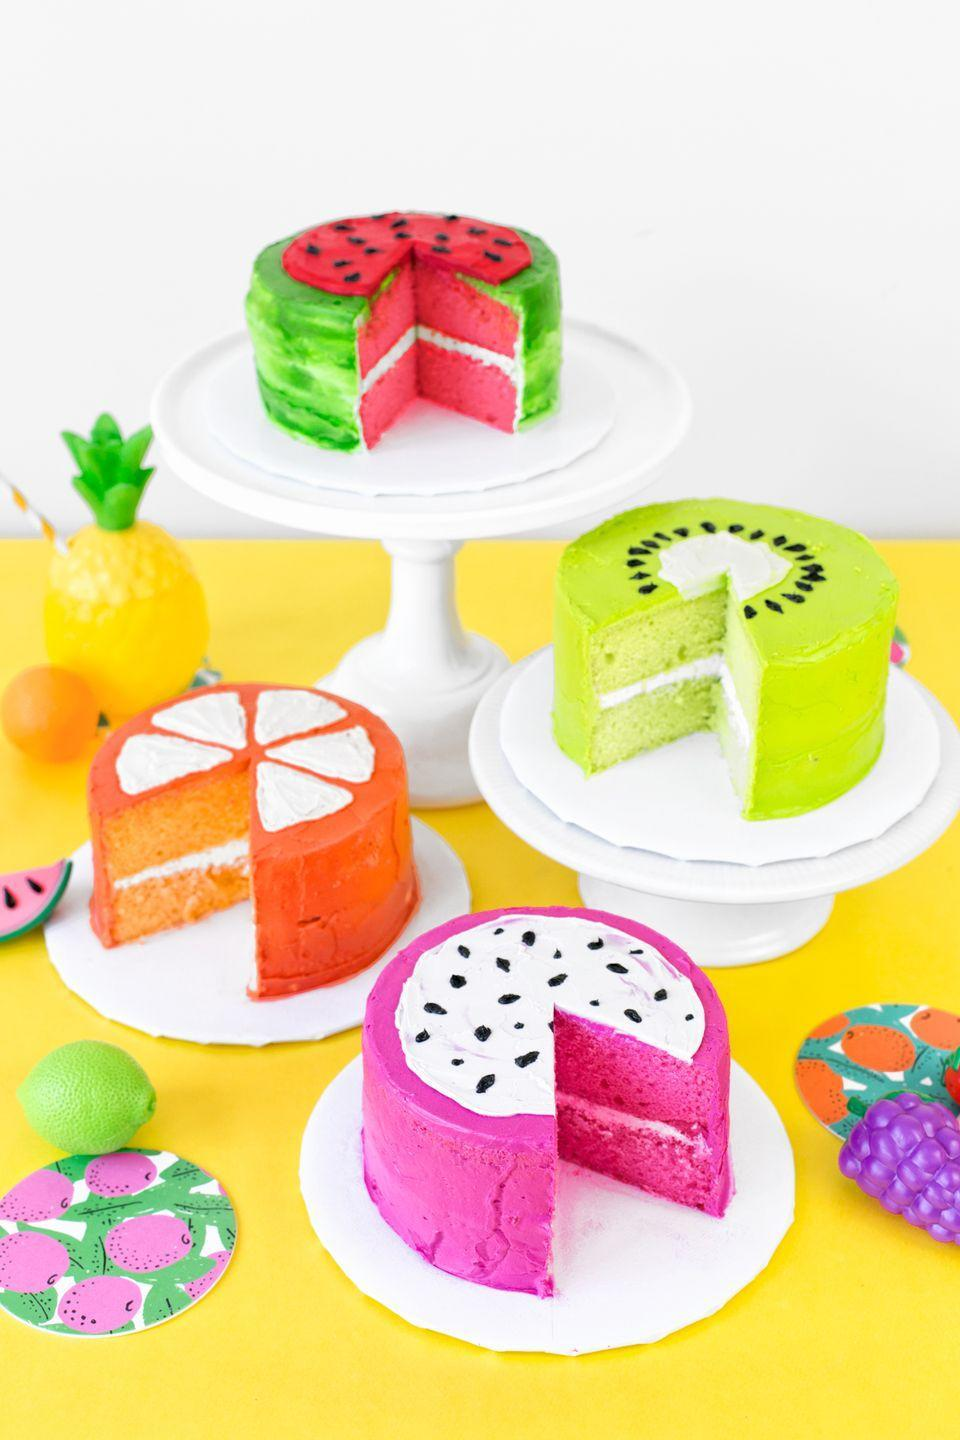 "<p>A colorful, fruit-inspired garden party is just what you need to brighten up your big day. Good old-fashioned fruit can and should be on the menu, but the party would be incomplete without these adorable fruit-themed cakes.</p><p><strong>Get the recipes from <a href=""https://studiodiy.com/fruit-garden-party/"" rel=""nofollow noopener"" target=""_blank"" data-ylk=""slk:Studio DIY!"" class=""link rapid-noclick-resp"">Studio DIY!</a>.</strong></p><p><a class=""link rapid-noclick-resp"" href=""https://go.redirectingat.com?id=74968X1596630&url=https%3A%2F%2Fwww.walmart.com%2Fip%2F50-Pack-Watermelon-Luncheon-Napkins-3-Ply-Tutti-Frutti-Dinner-Napkins-Summer-Pool-Fruit-Party-Baby-Shower-Two-tti-Fruity-2nd-Birthday-Supplies-6-3-x-%2F934655231&sref=https%3A%2F%2Fwww.thepioneerwoman.com%2Fhome-lifestyle%2Fentertaining%2Fg34192298%2F50th-birthday-party-ideas%2F"" rel=""nofollow noopener"" target=""_blank"" data-ylk=""slk:SHOP WATERMELON NAPKINS"">SHOP WATERMELON NAPKINS</a></p>"